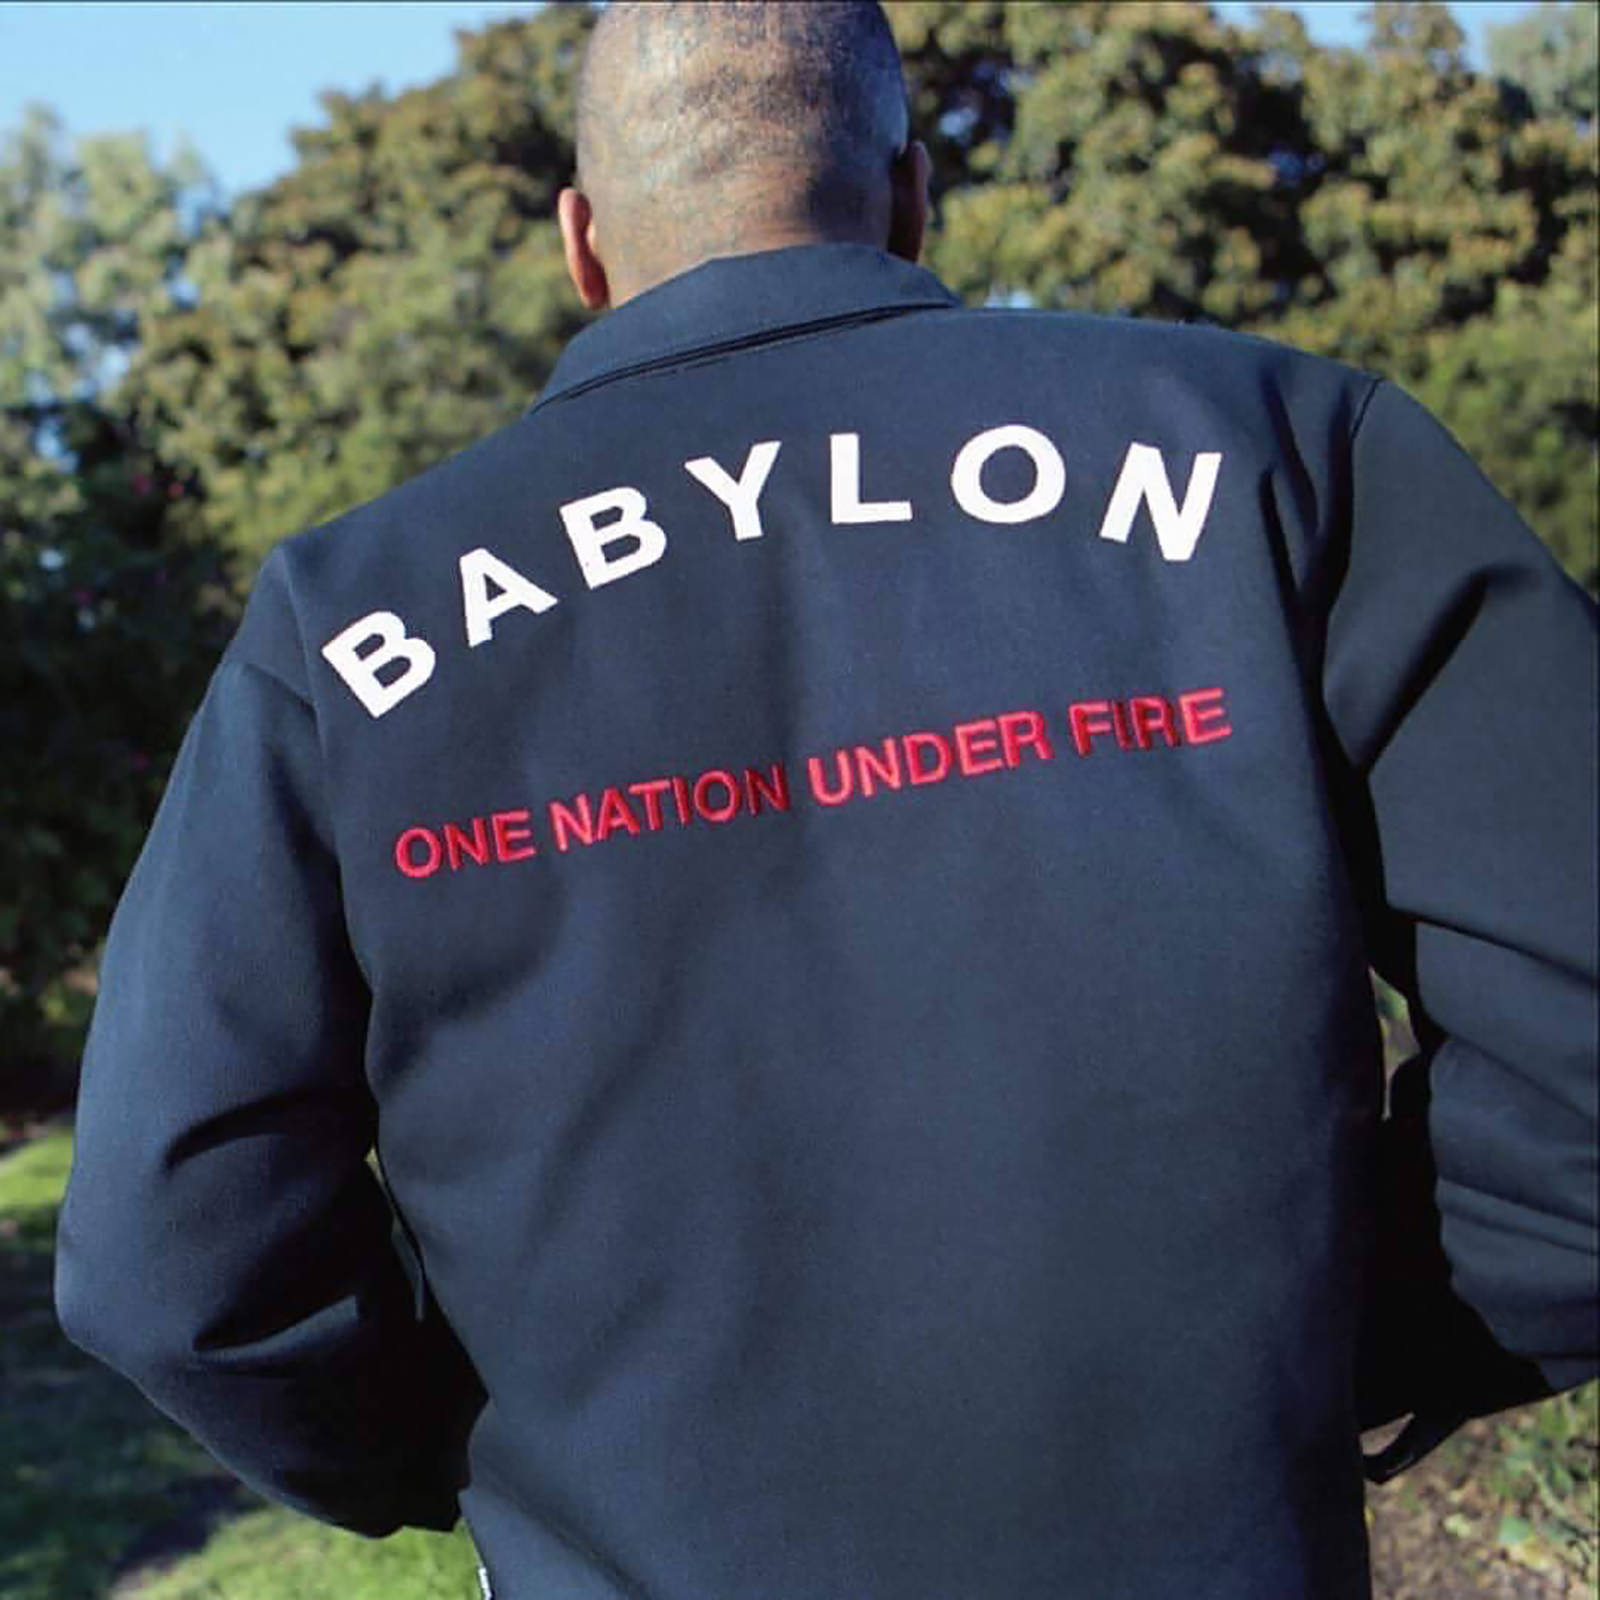 582d3b44814bc3490b9bb9e7_babylon-under-fire-jacket-01